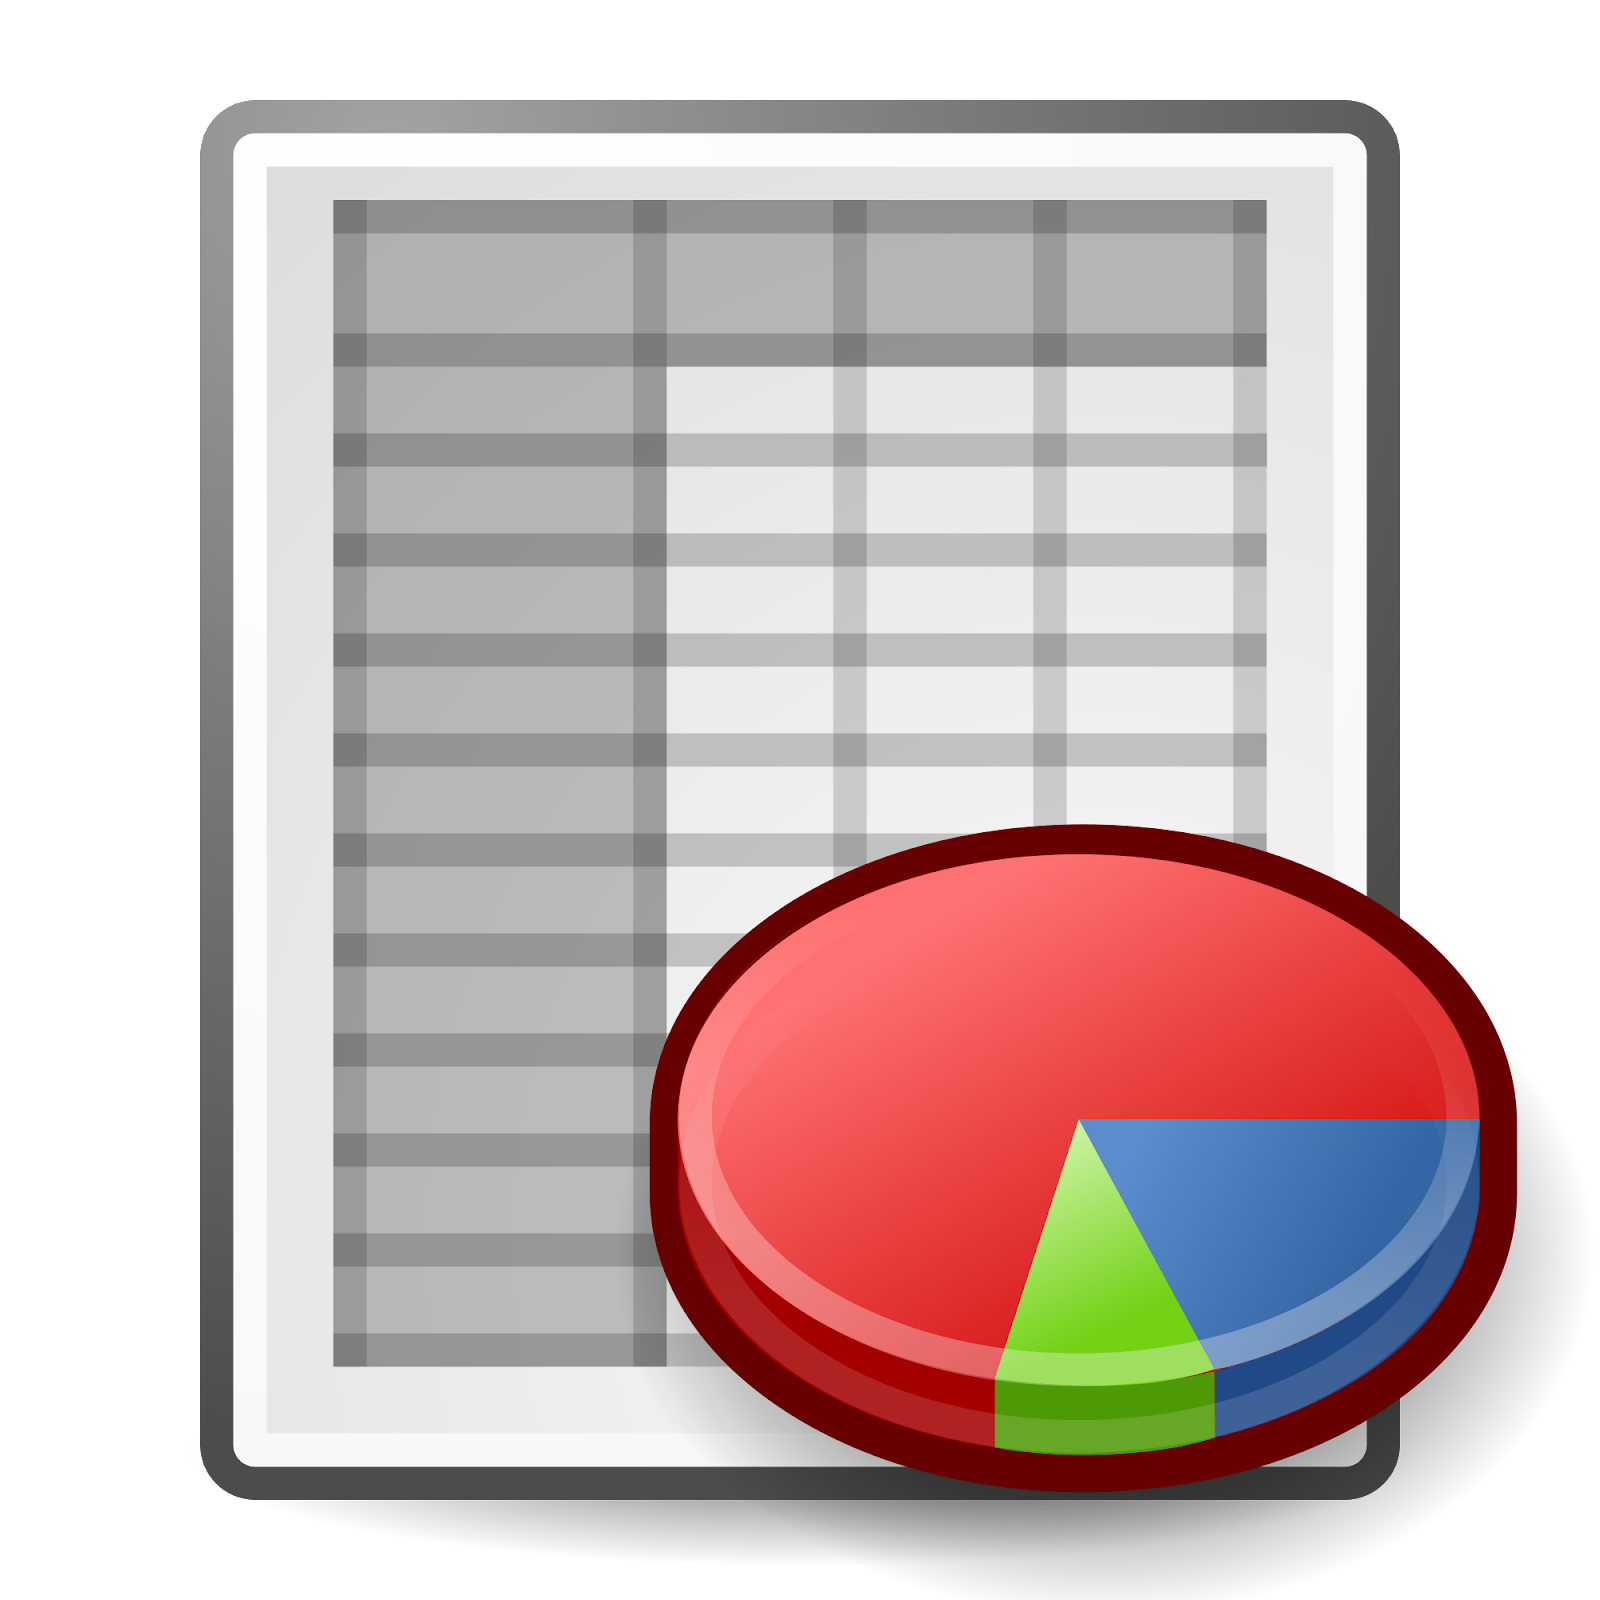 File:X-office-spreadsheet.svg - Wikimedia Commons